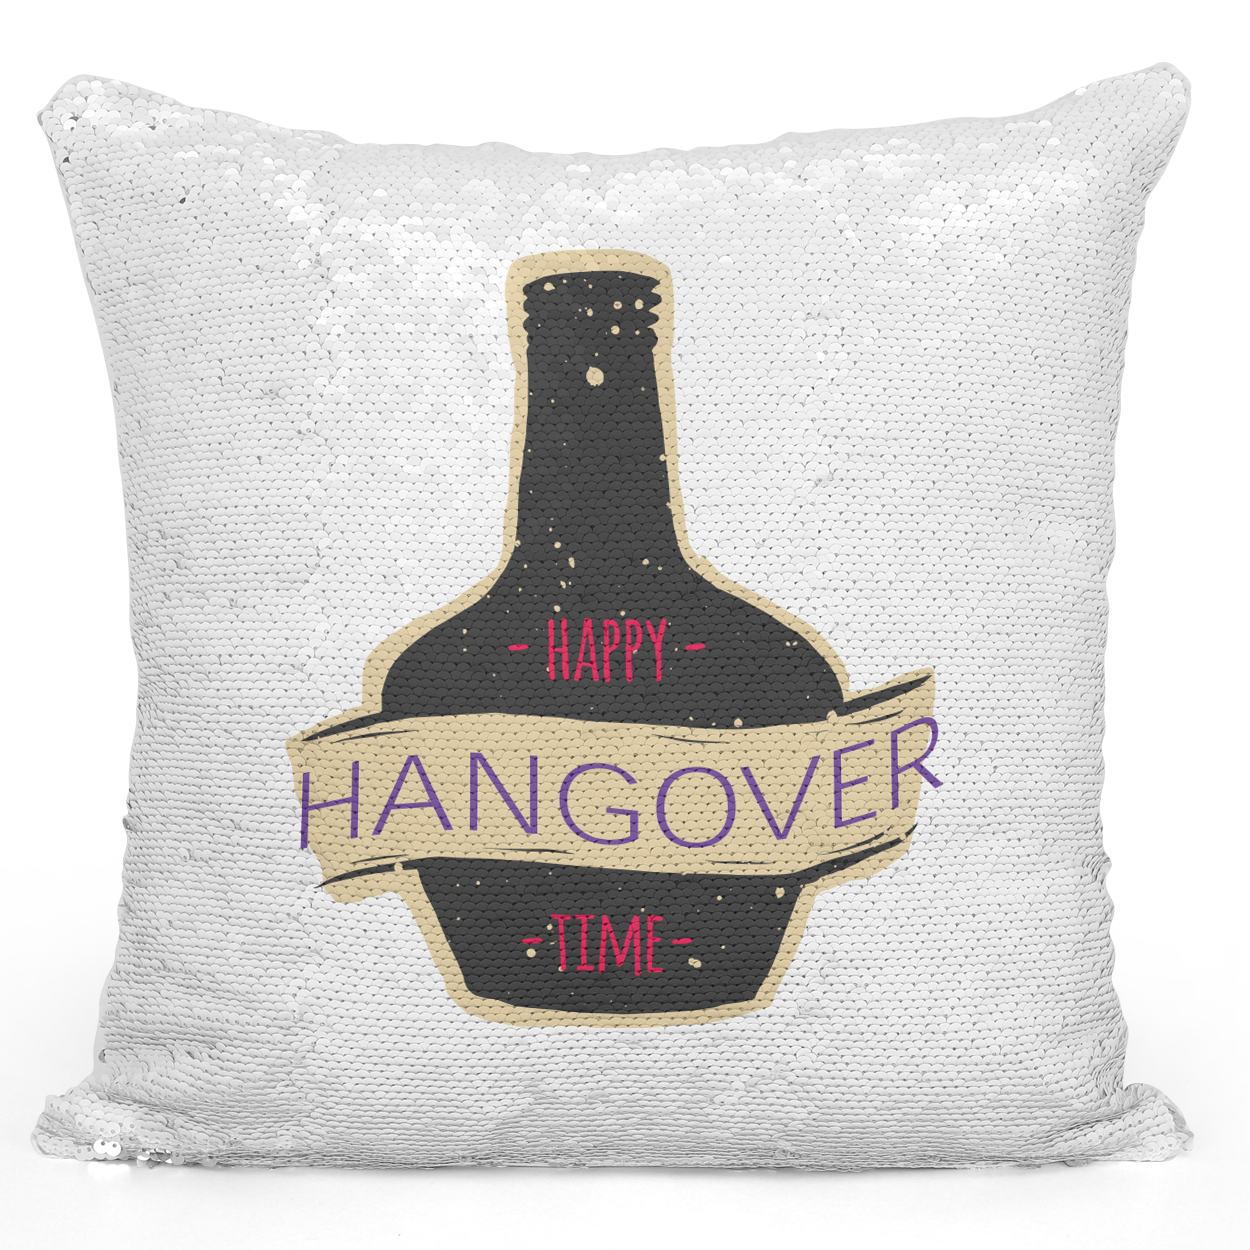 Sequin Pillow Magic Mermaid Throw Pillow Happy Hangover Time Happy Hour Bottle - Pure White Printed 16 x 16 inch Square Home Decor Couch Pillow Loud Universe